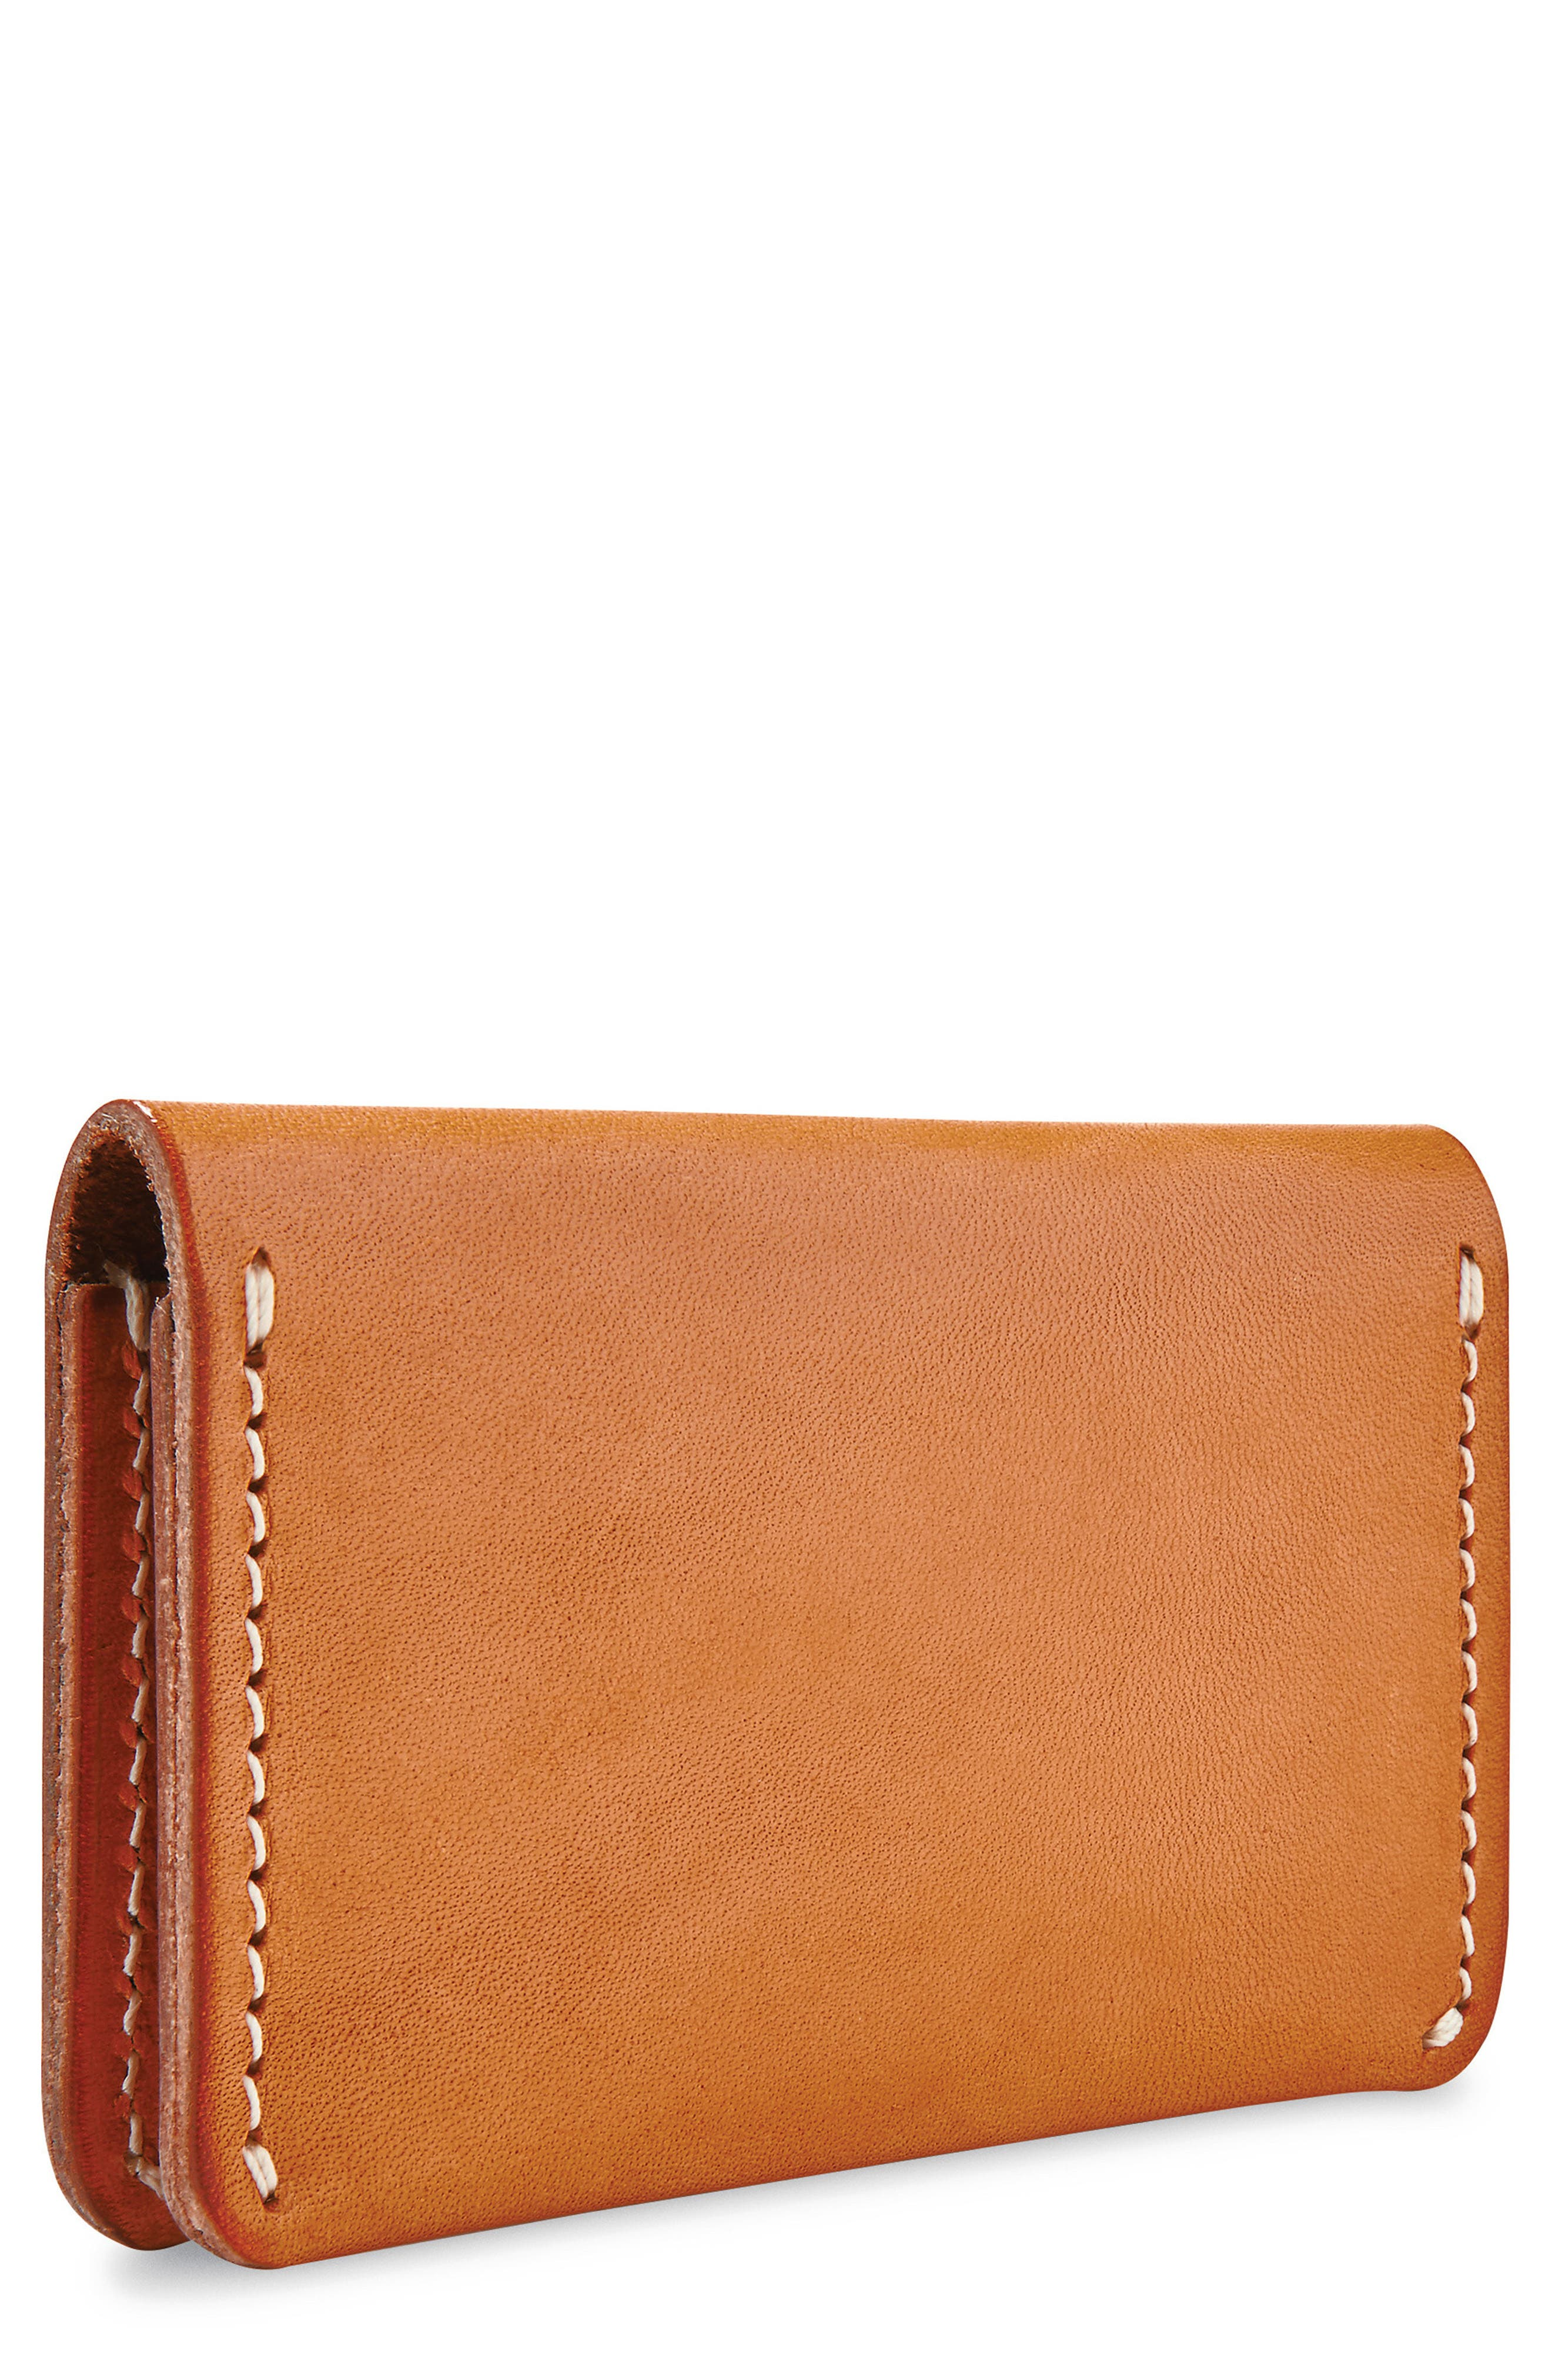 Leather Card Holder,                         Main,                         color, Tanned Vegetable